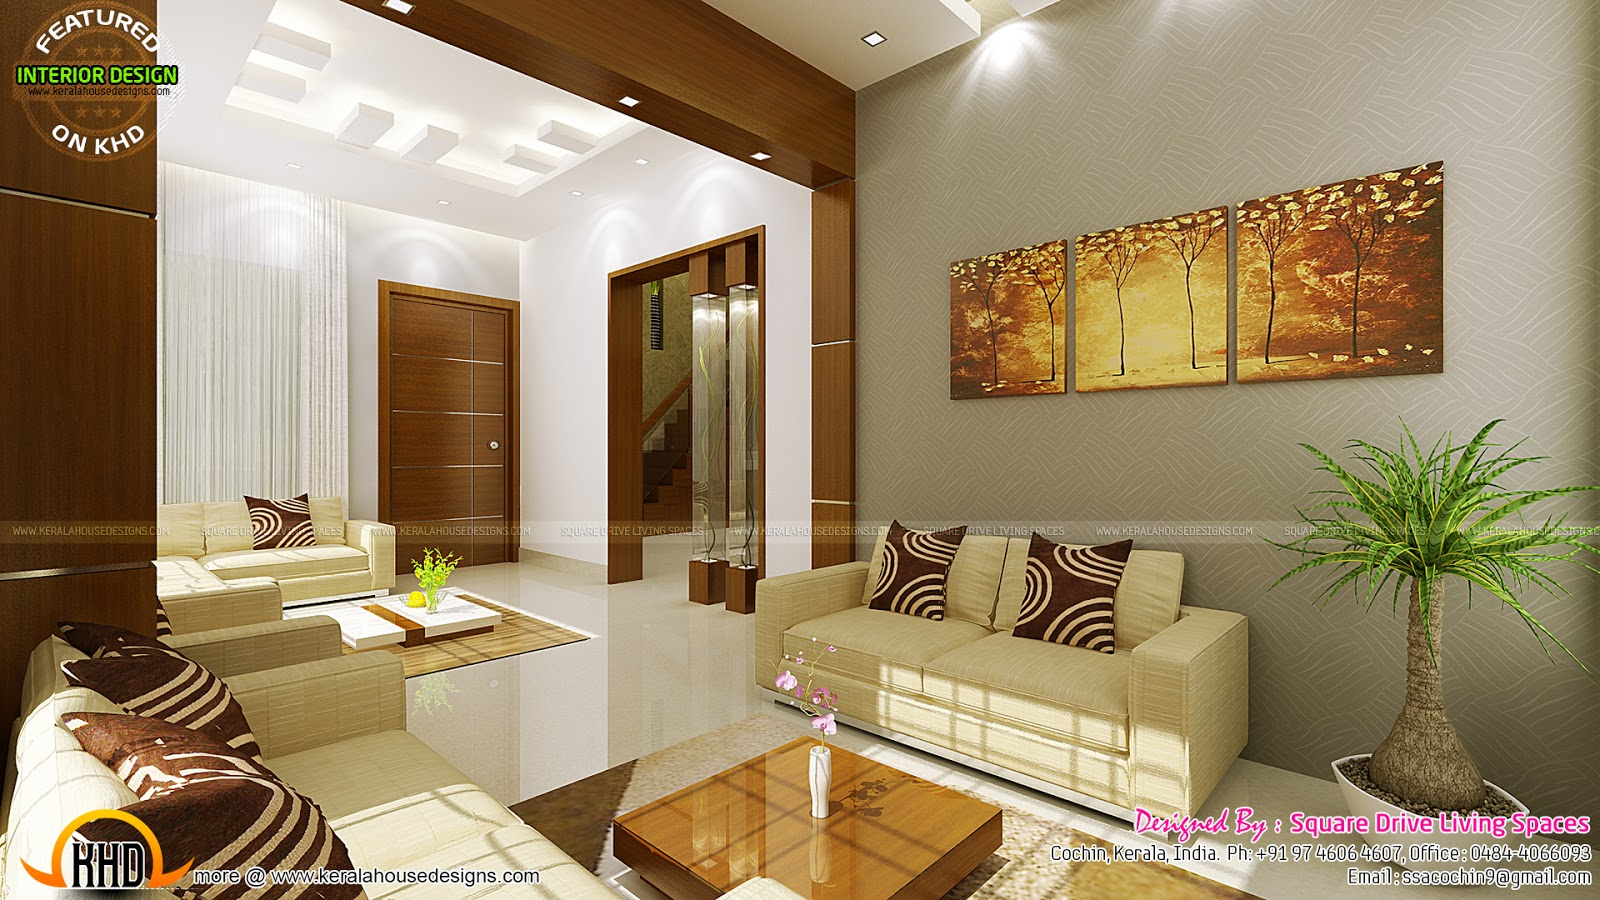 Contemporary kitchen dining and living room kerala home for New room interior design